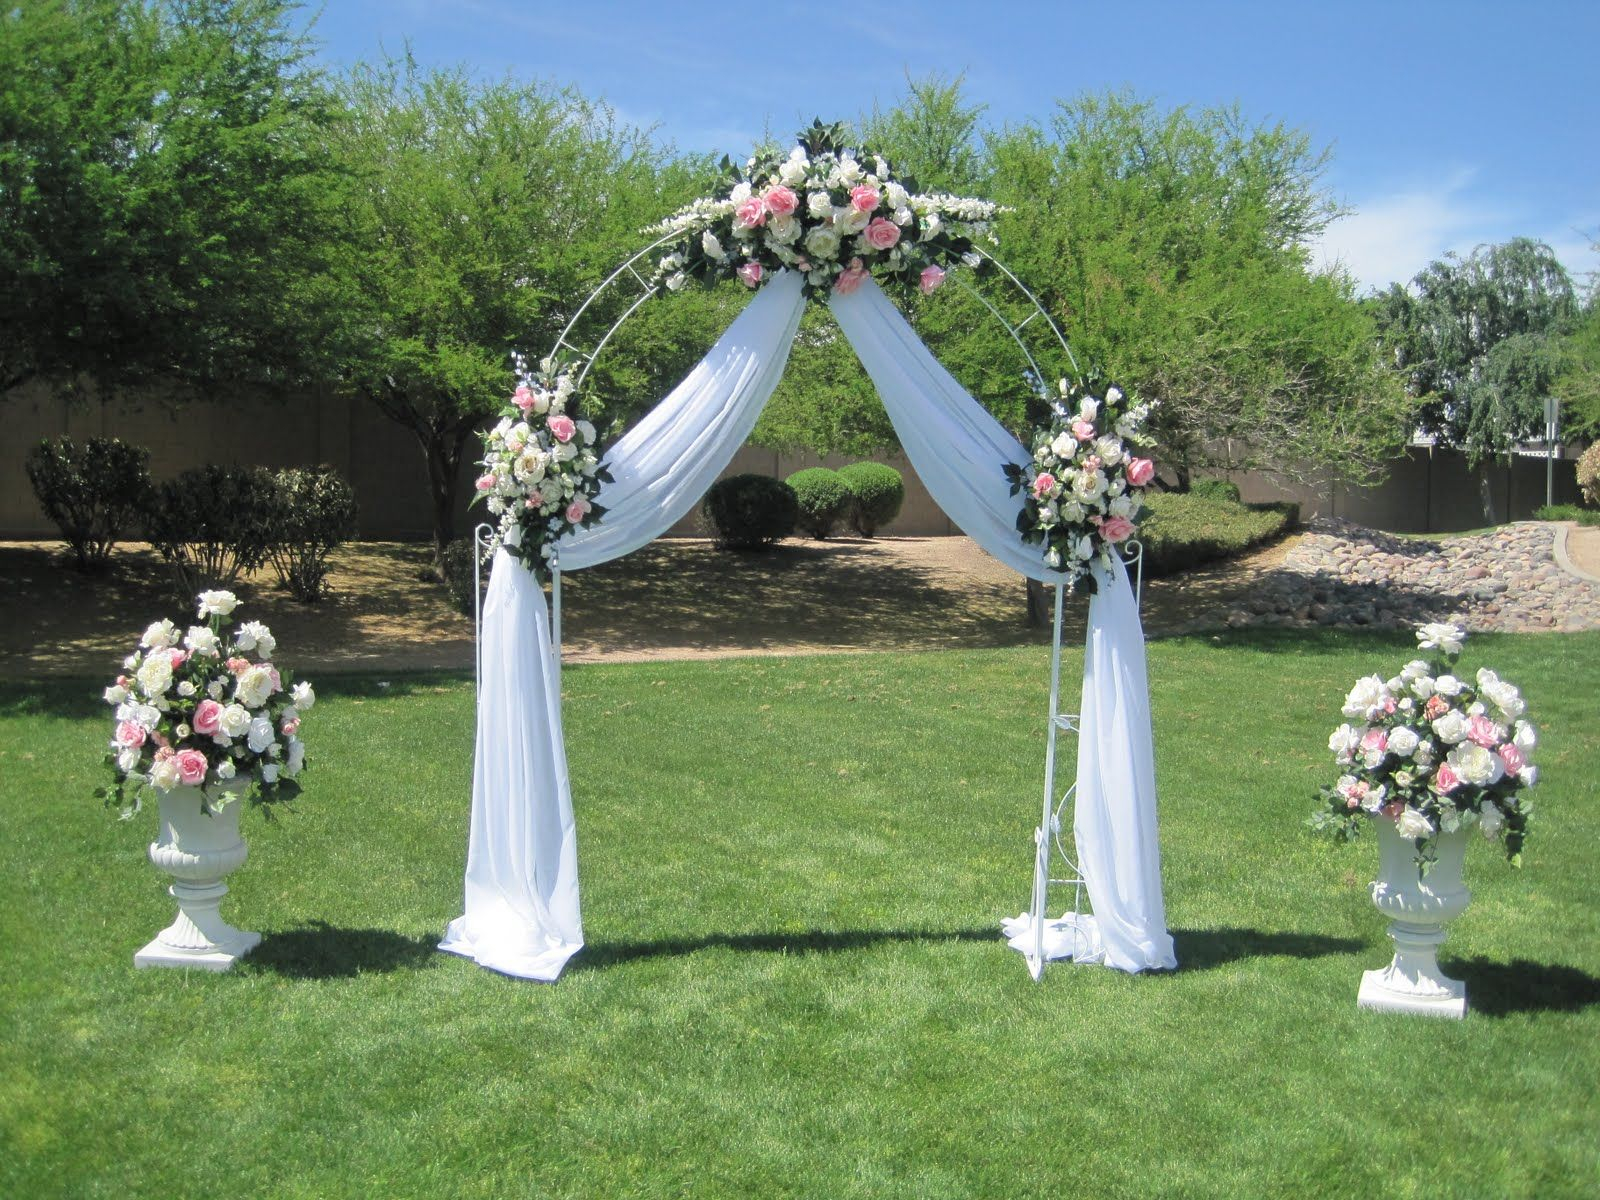 Wedding gazebo decorating ideas white wrought iron arch for Outdoor wedding gazebo decorating ideas